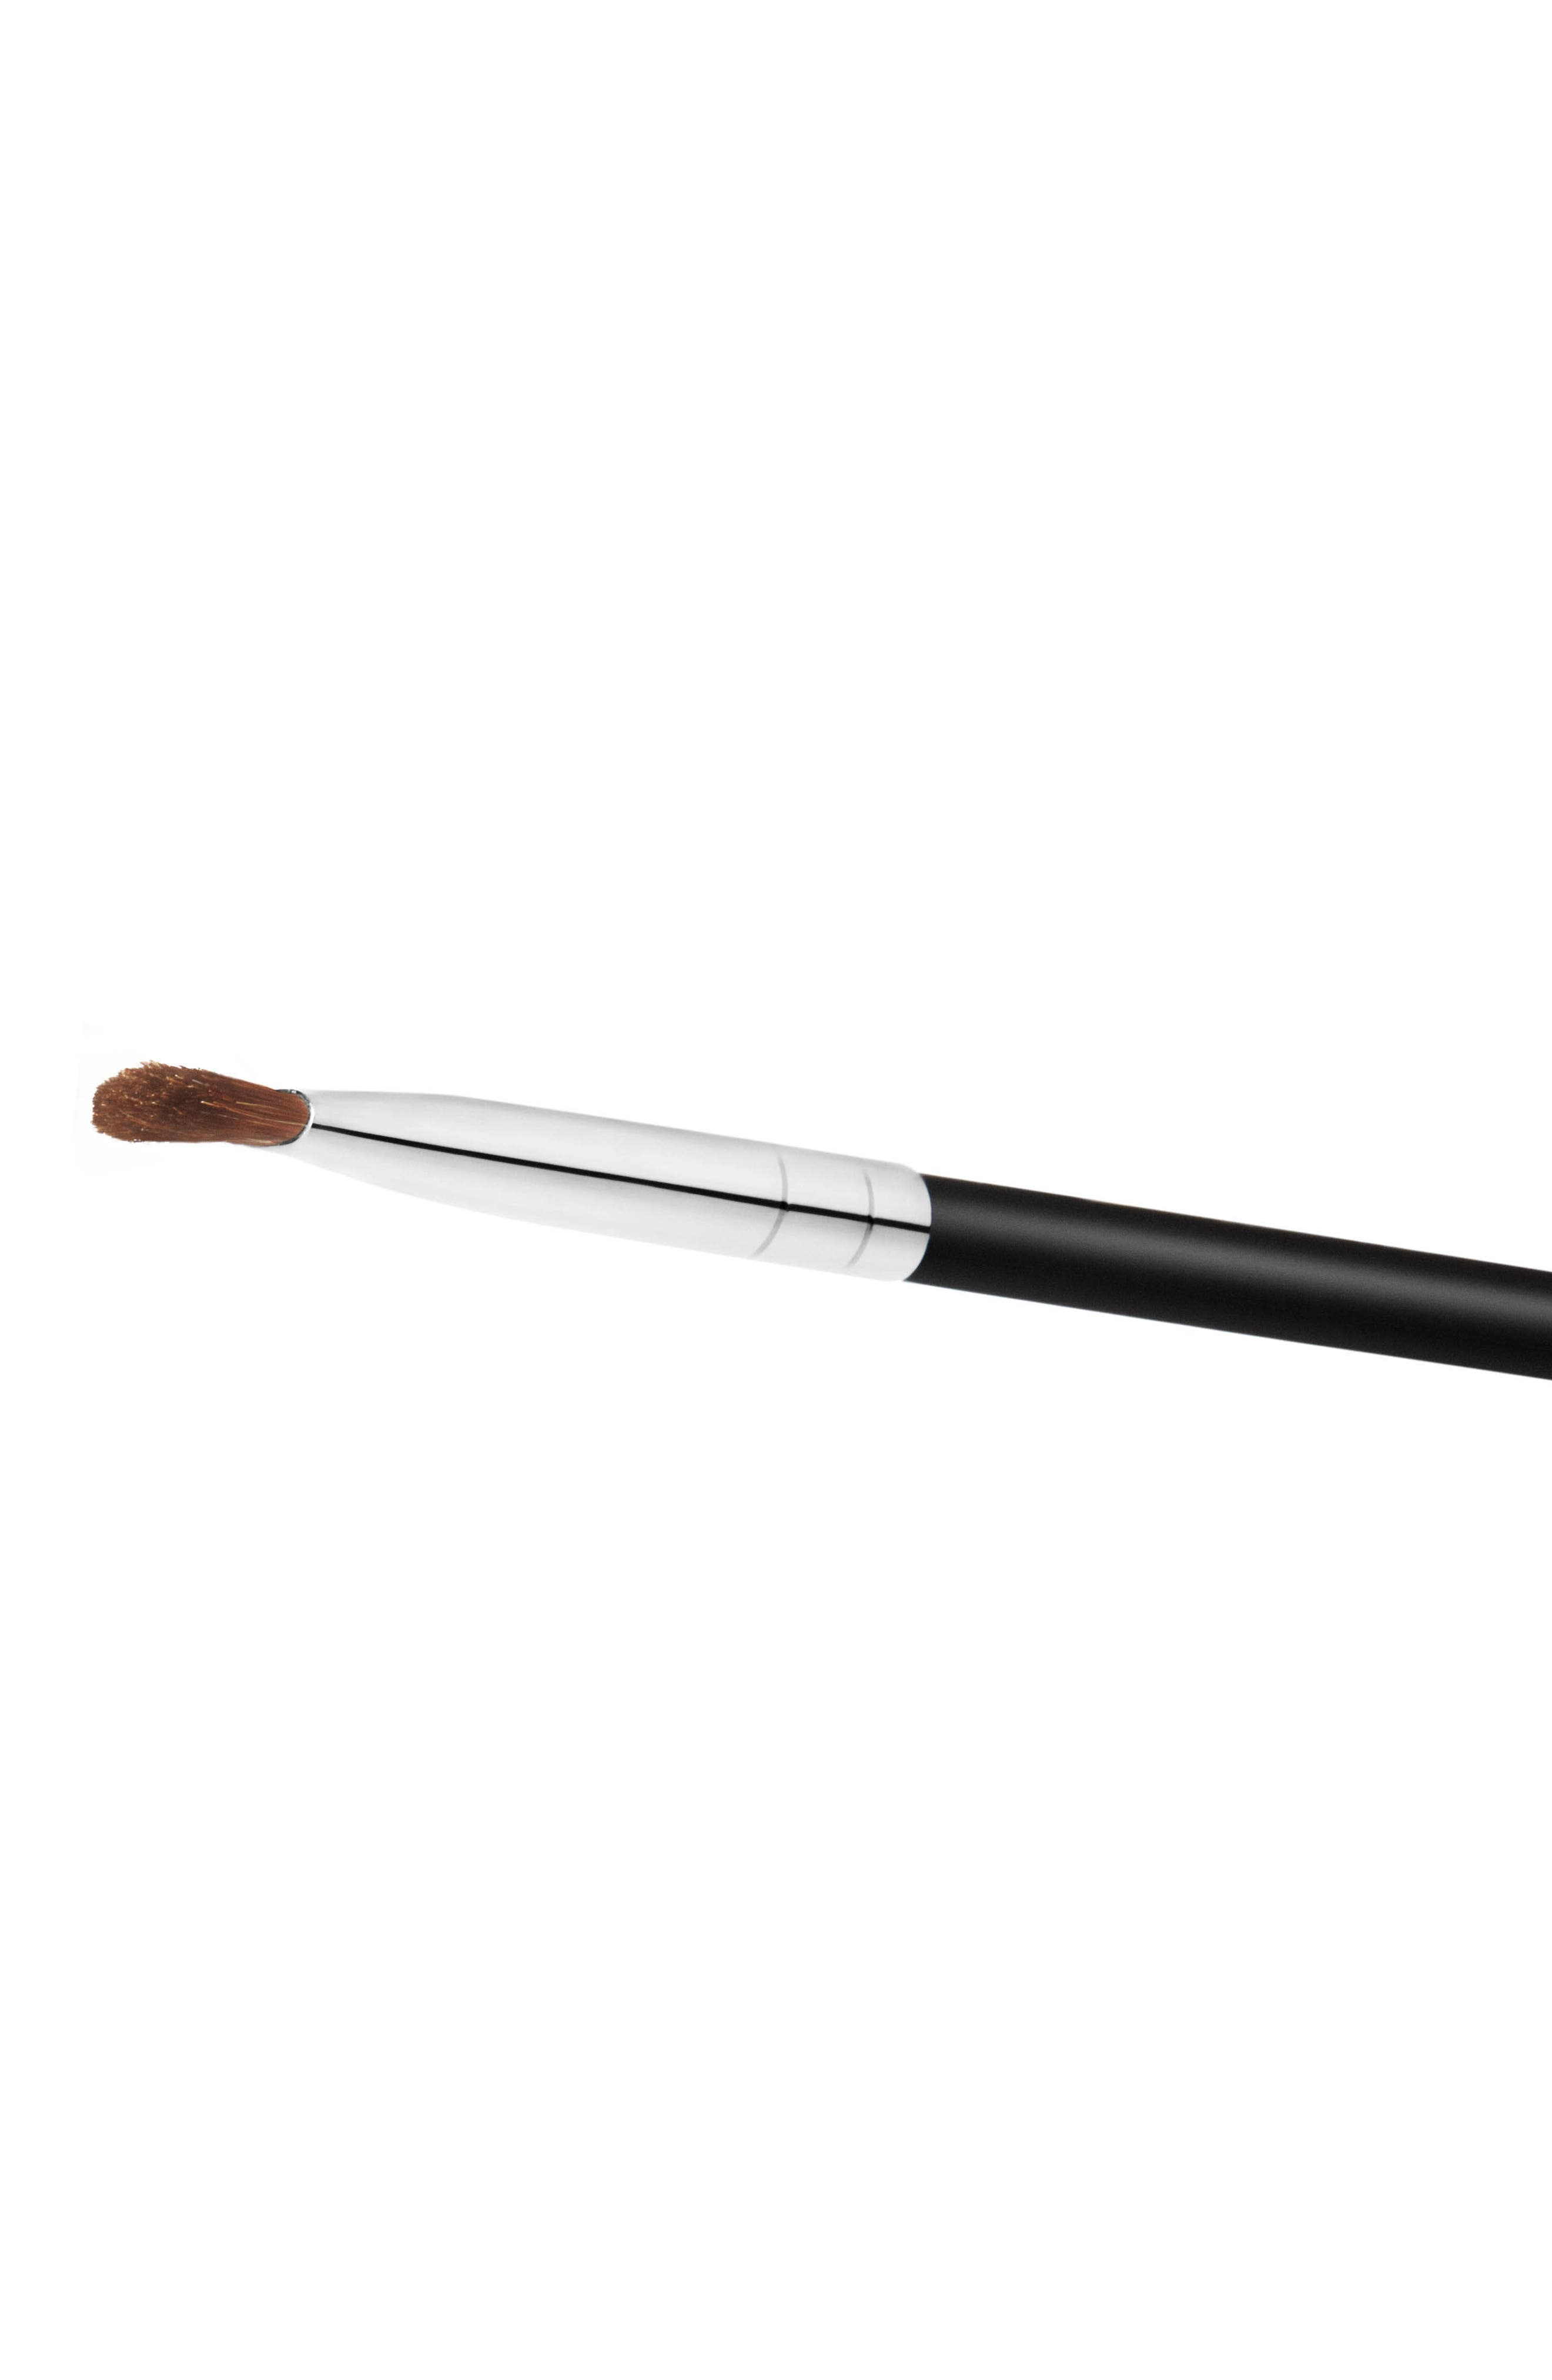 MAC 228 Synthetic Mini Shader Brush,                             Alternate thumbnail 2, color,                             No Color